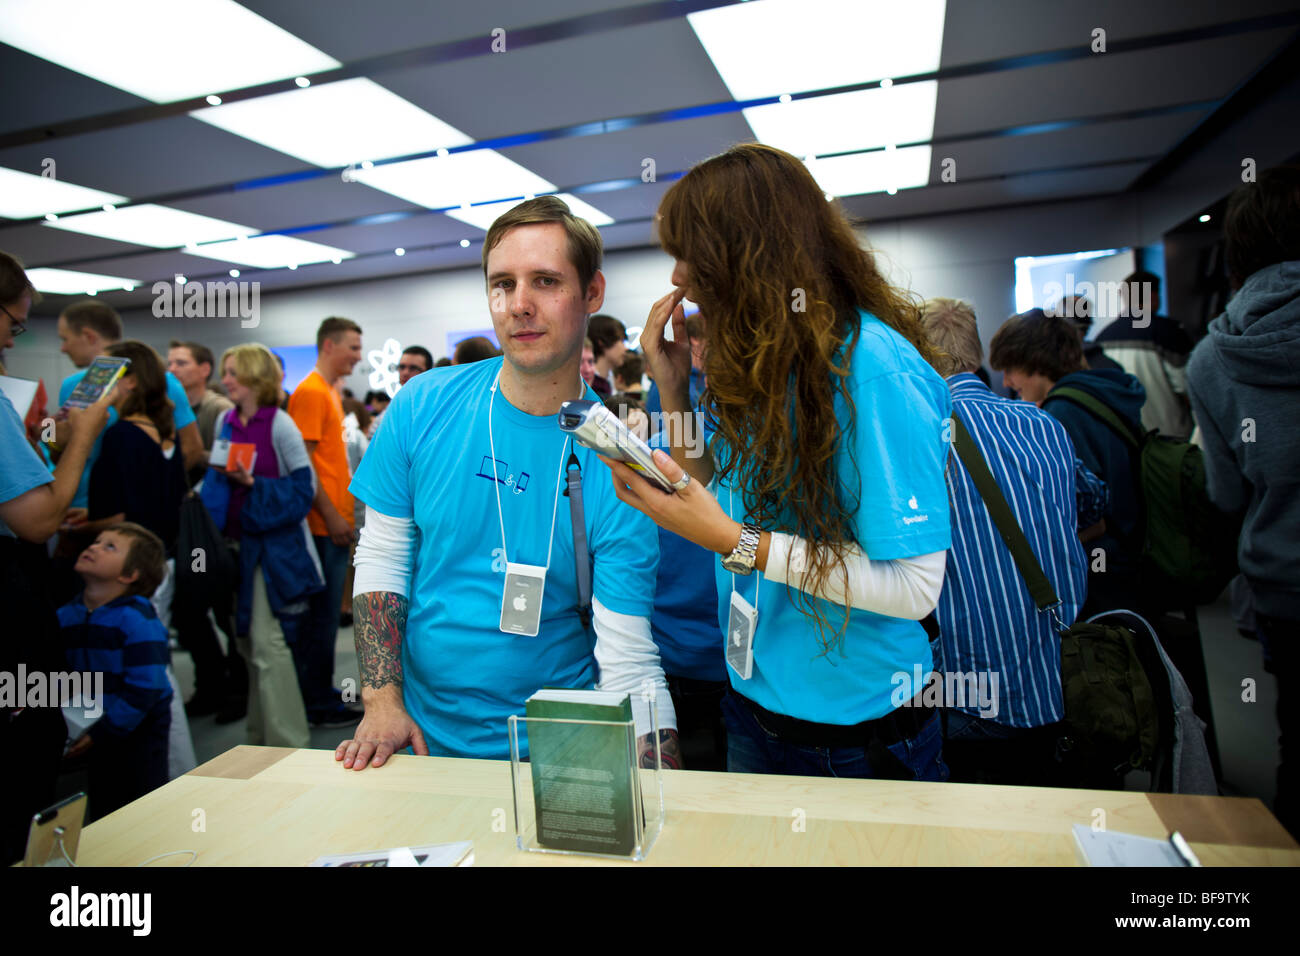 Second German Apple store opening in the Alstertal shopping center in Hamburg, Germany. - Stock Image